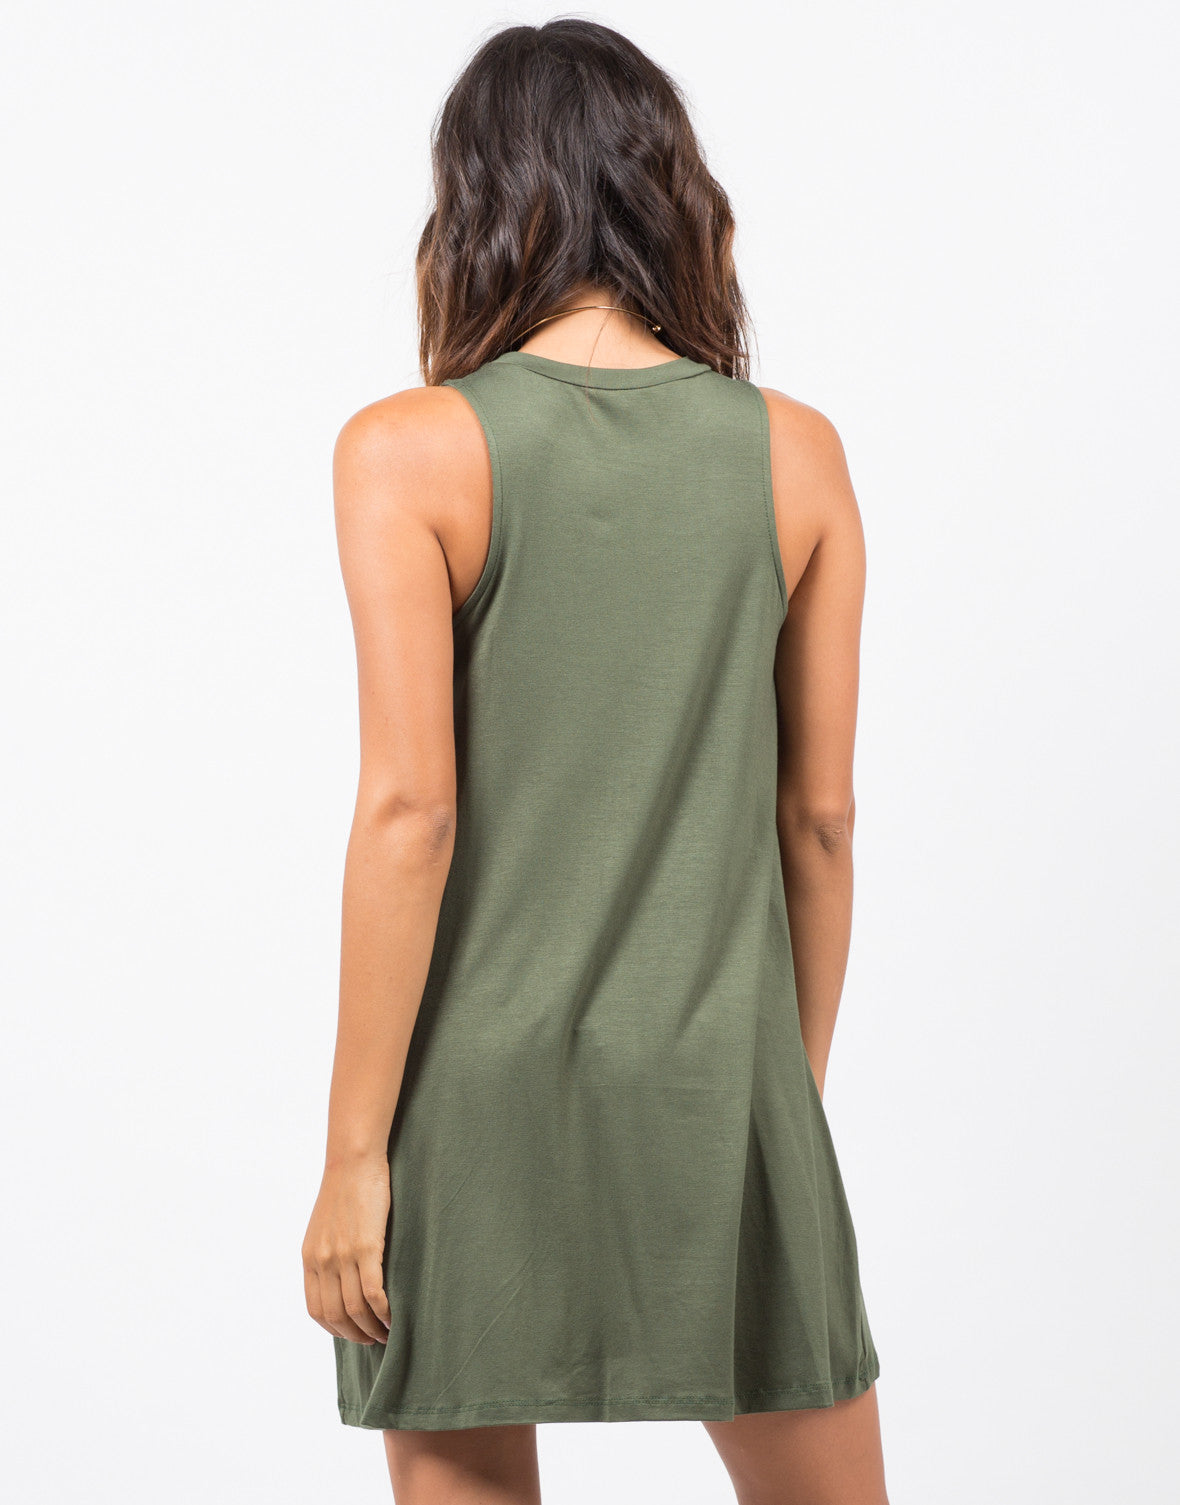 Back View of Sleeveless Swing Dress